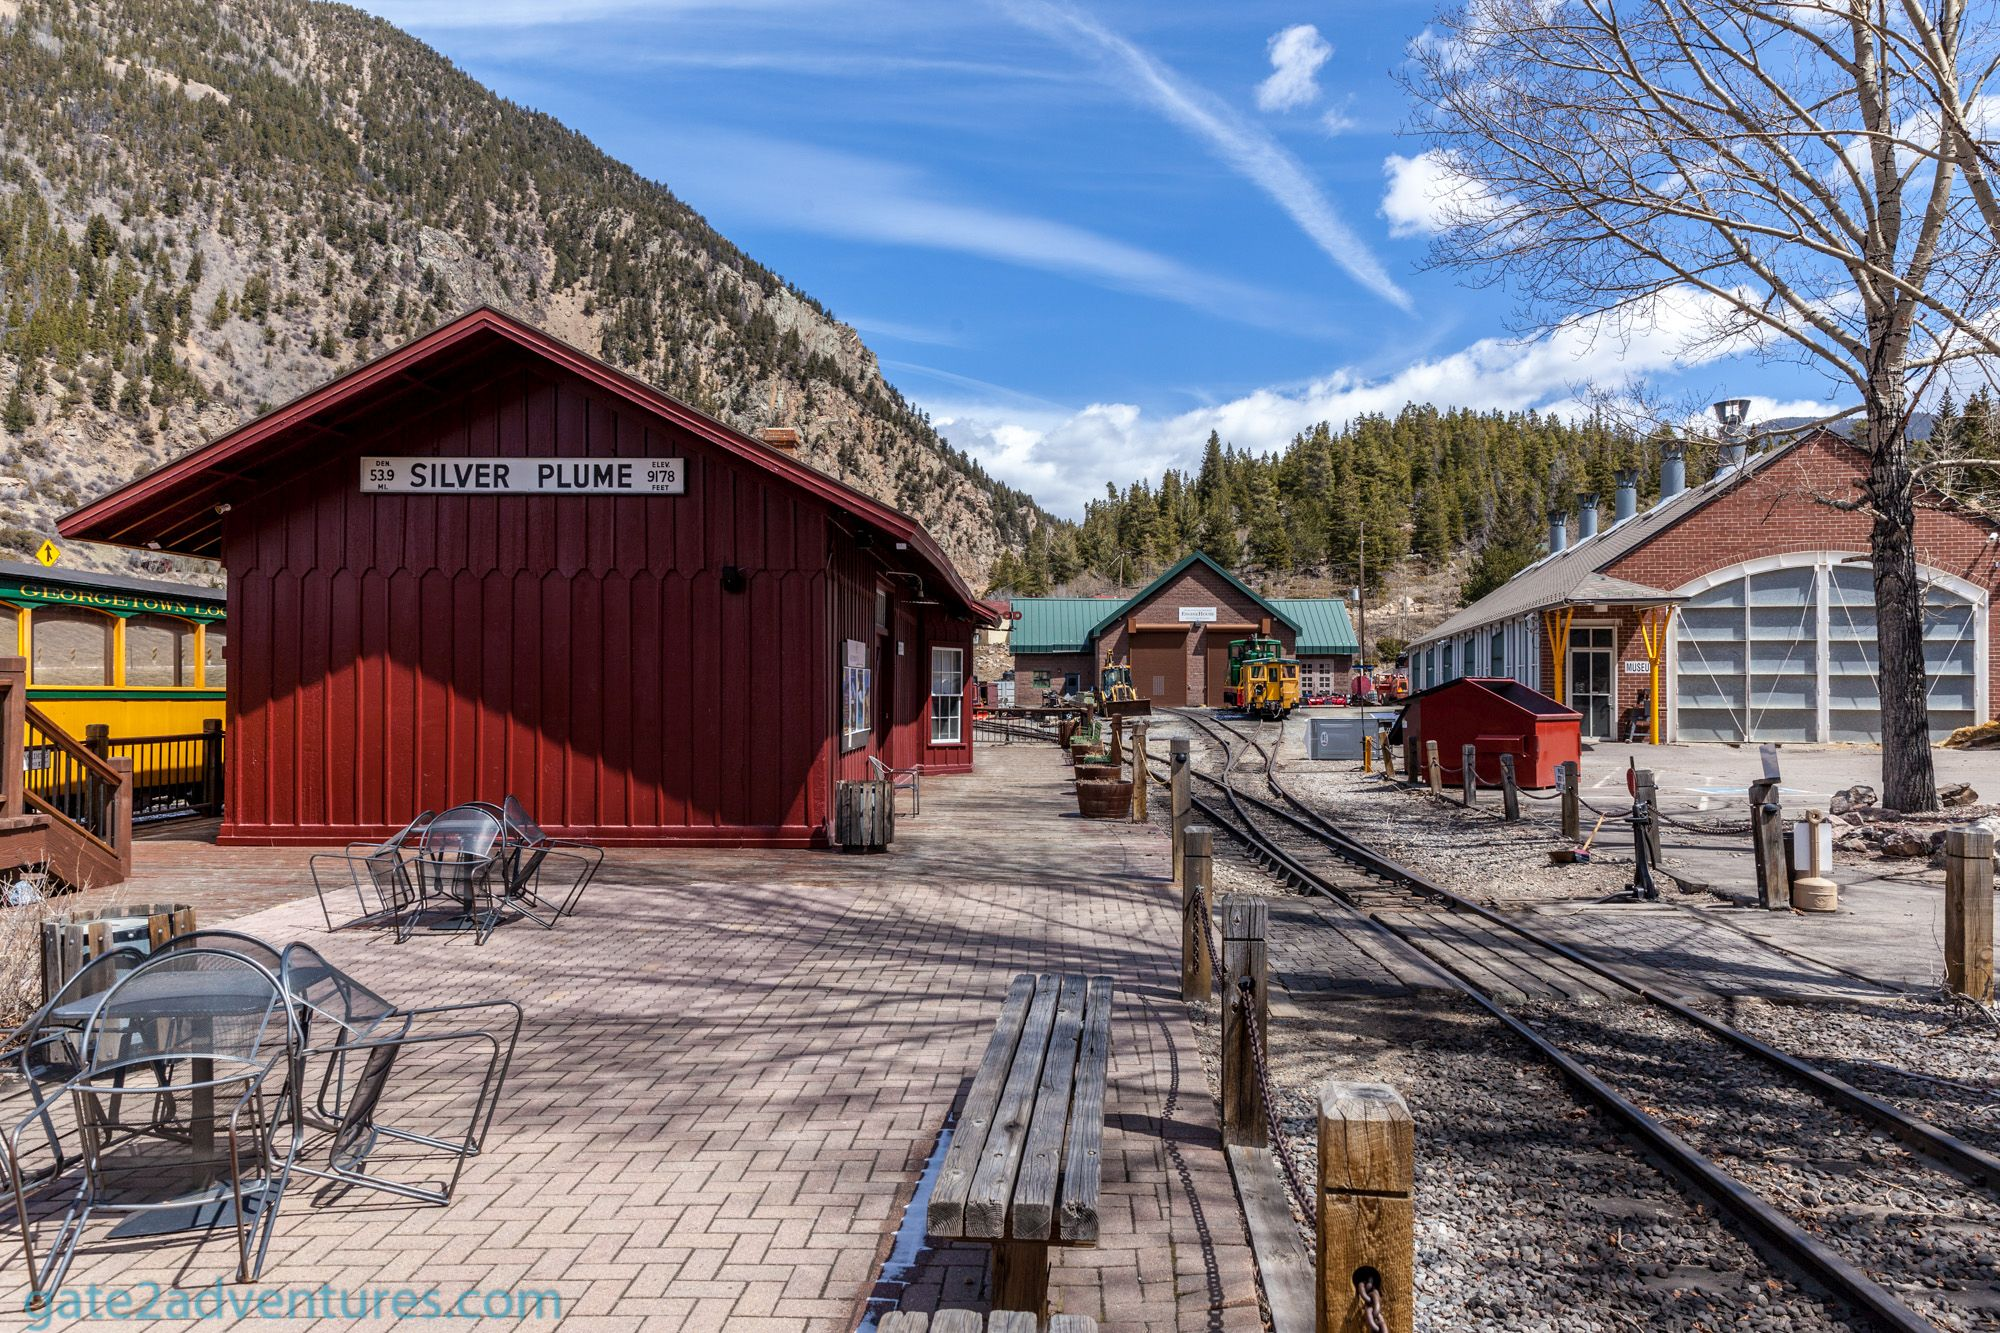 Geor own Loop Railroad and Mining Park Gate to Adventures